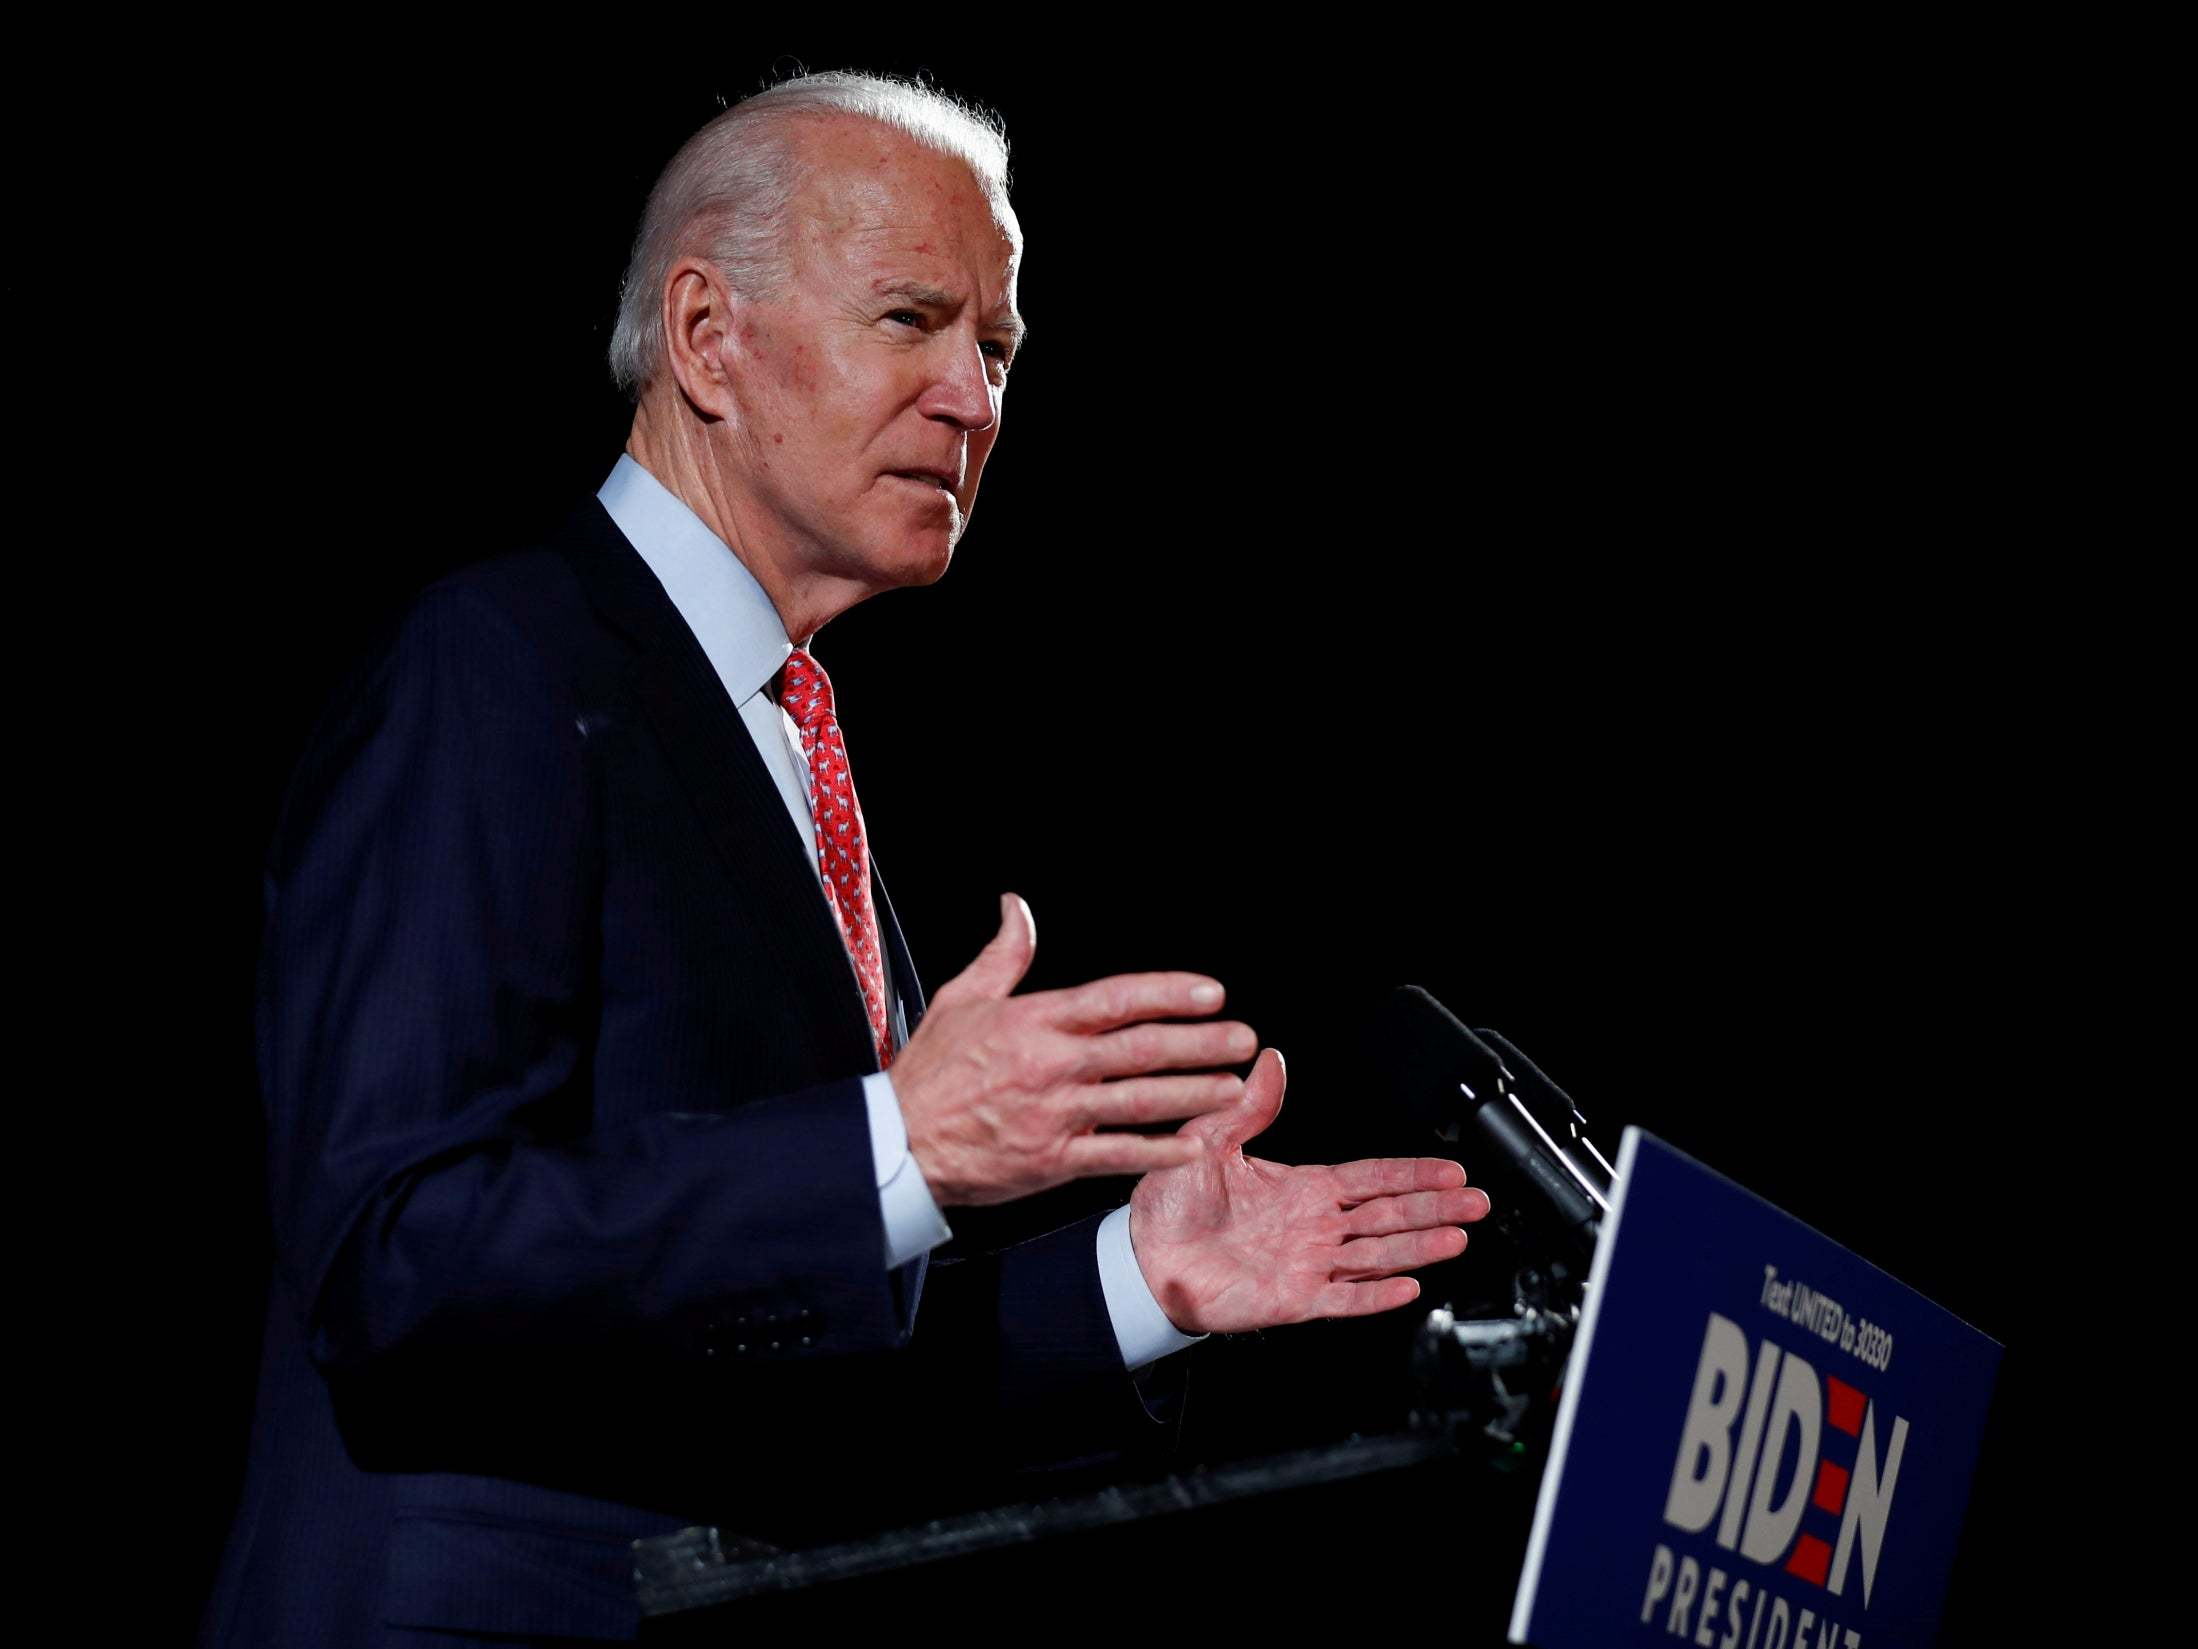 Joe Biden attacks Trump for playing golf over Memorial Day weekend as death toll heads toward 100,000 in new ad - The Independent